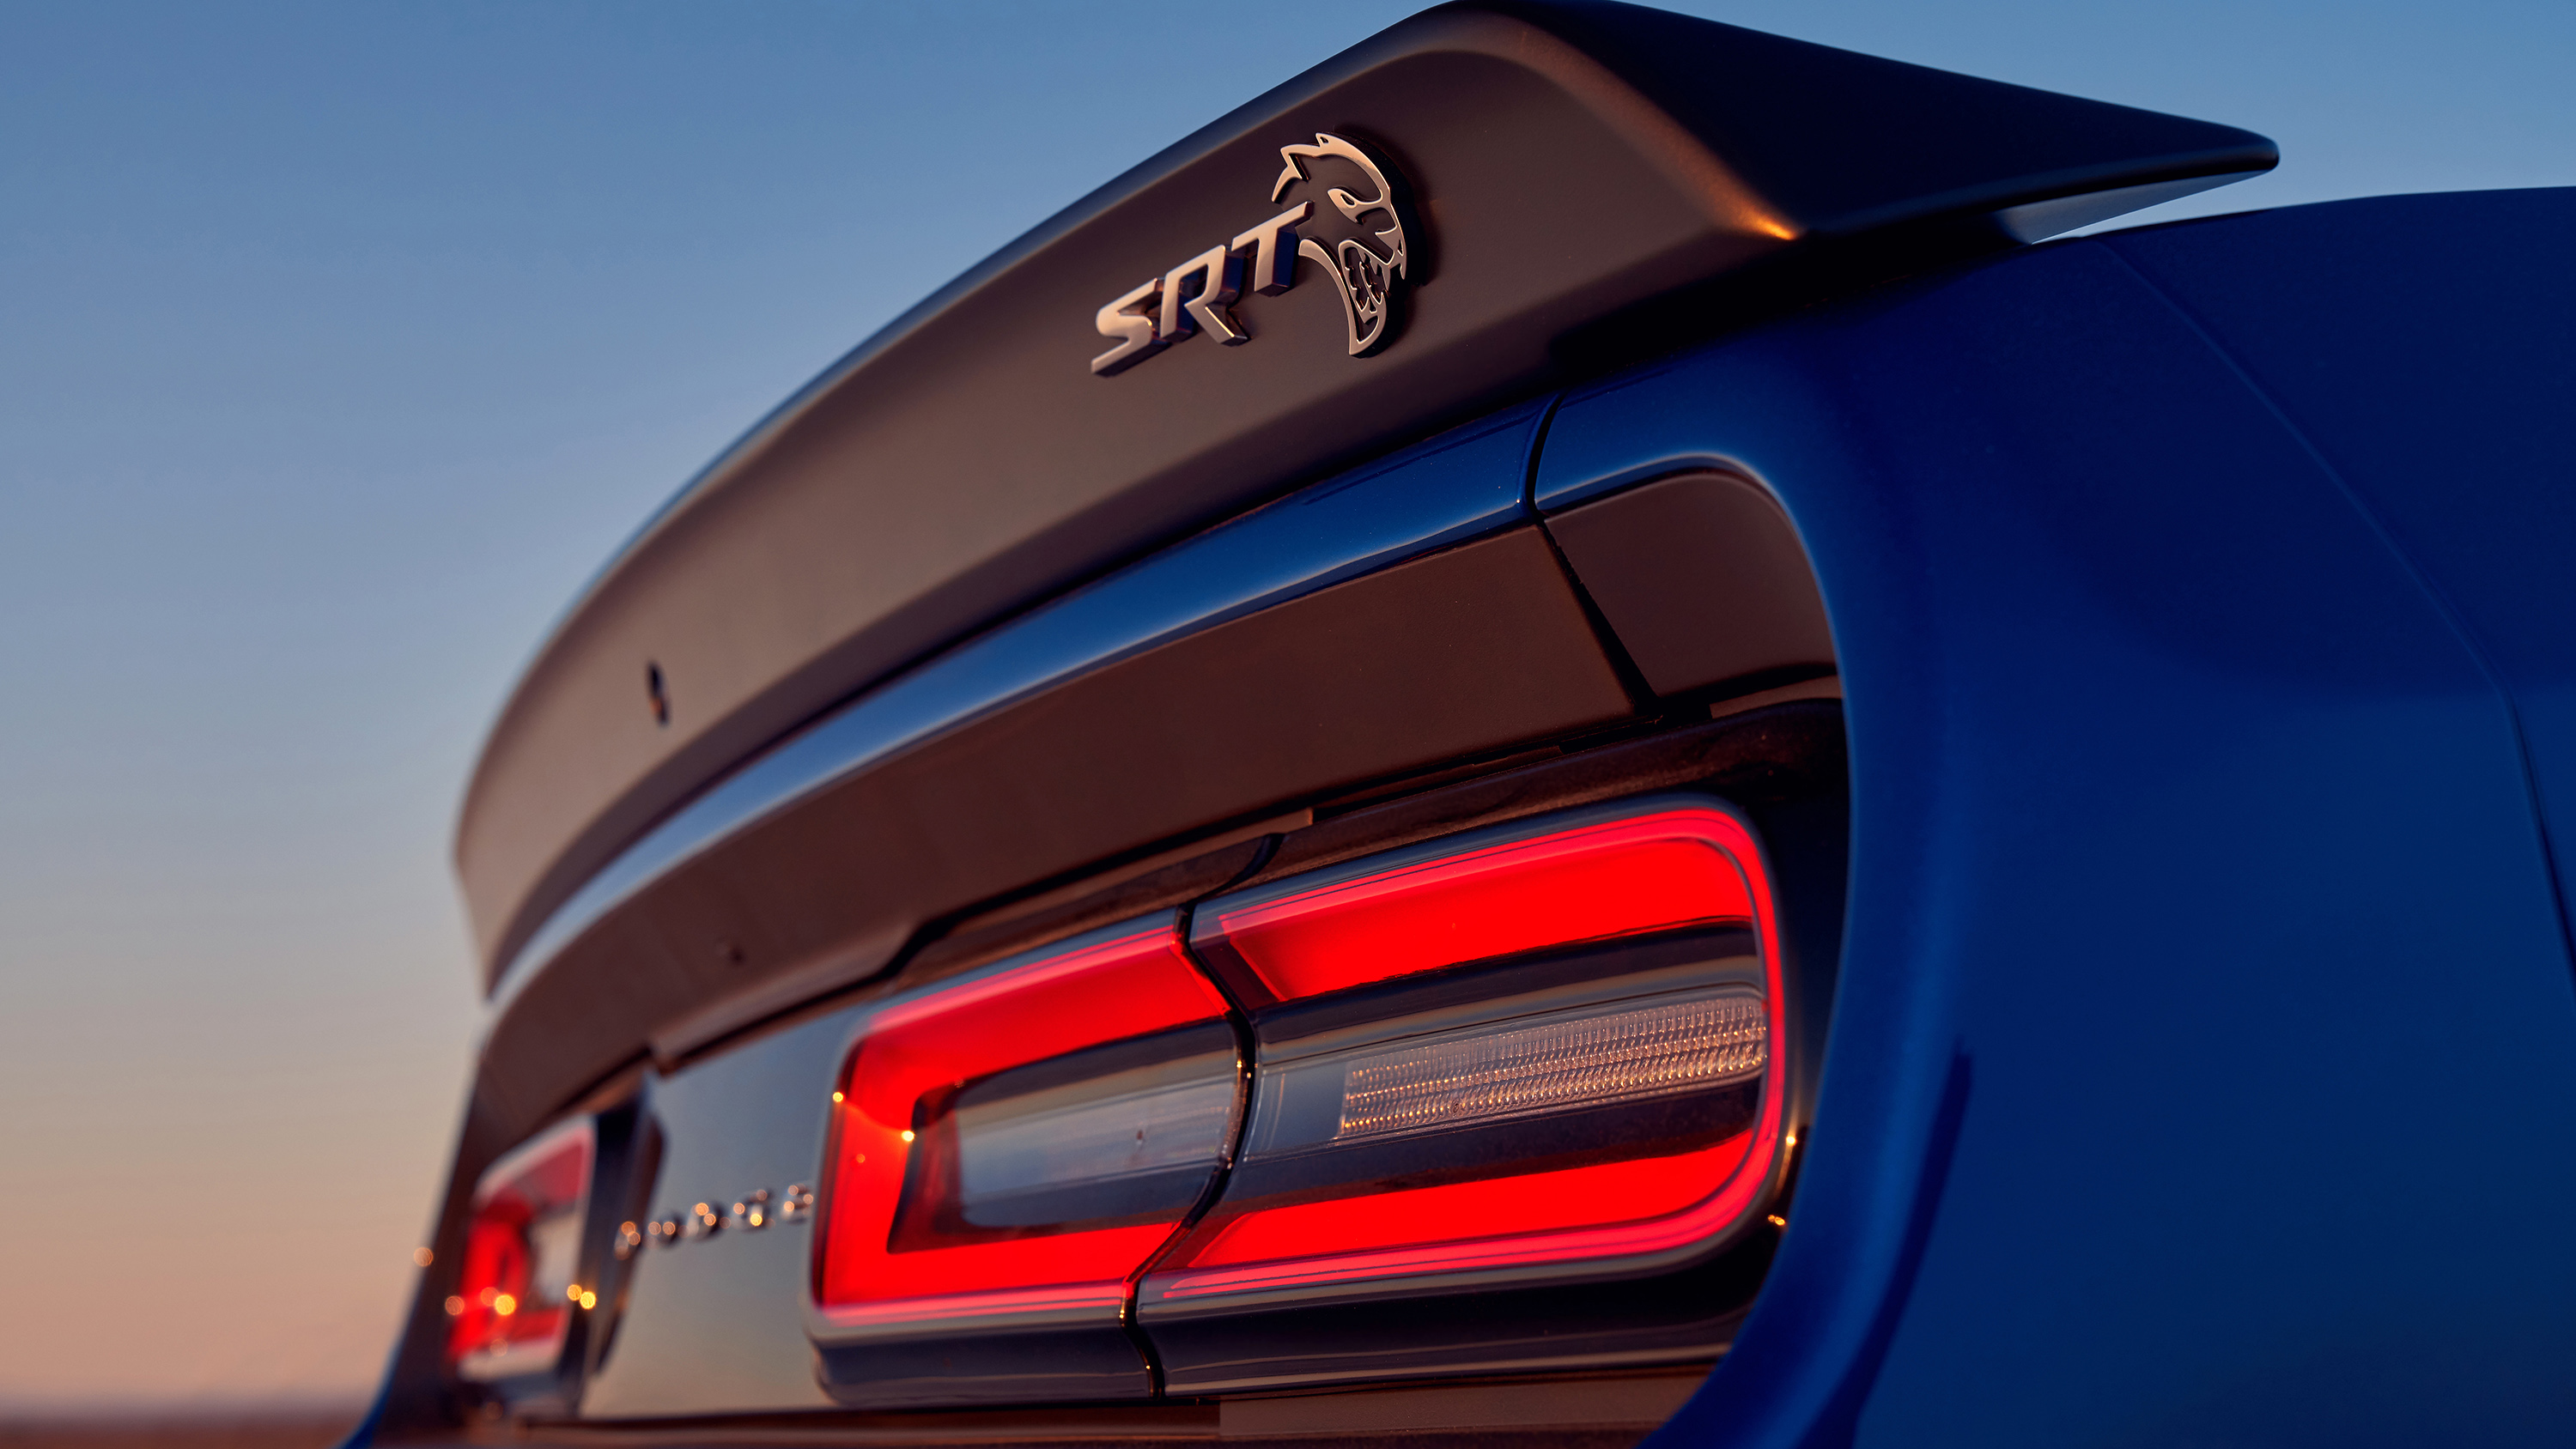 2019 Dodge Challenger SRT Hellcat Widebody 3 Wallpapers